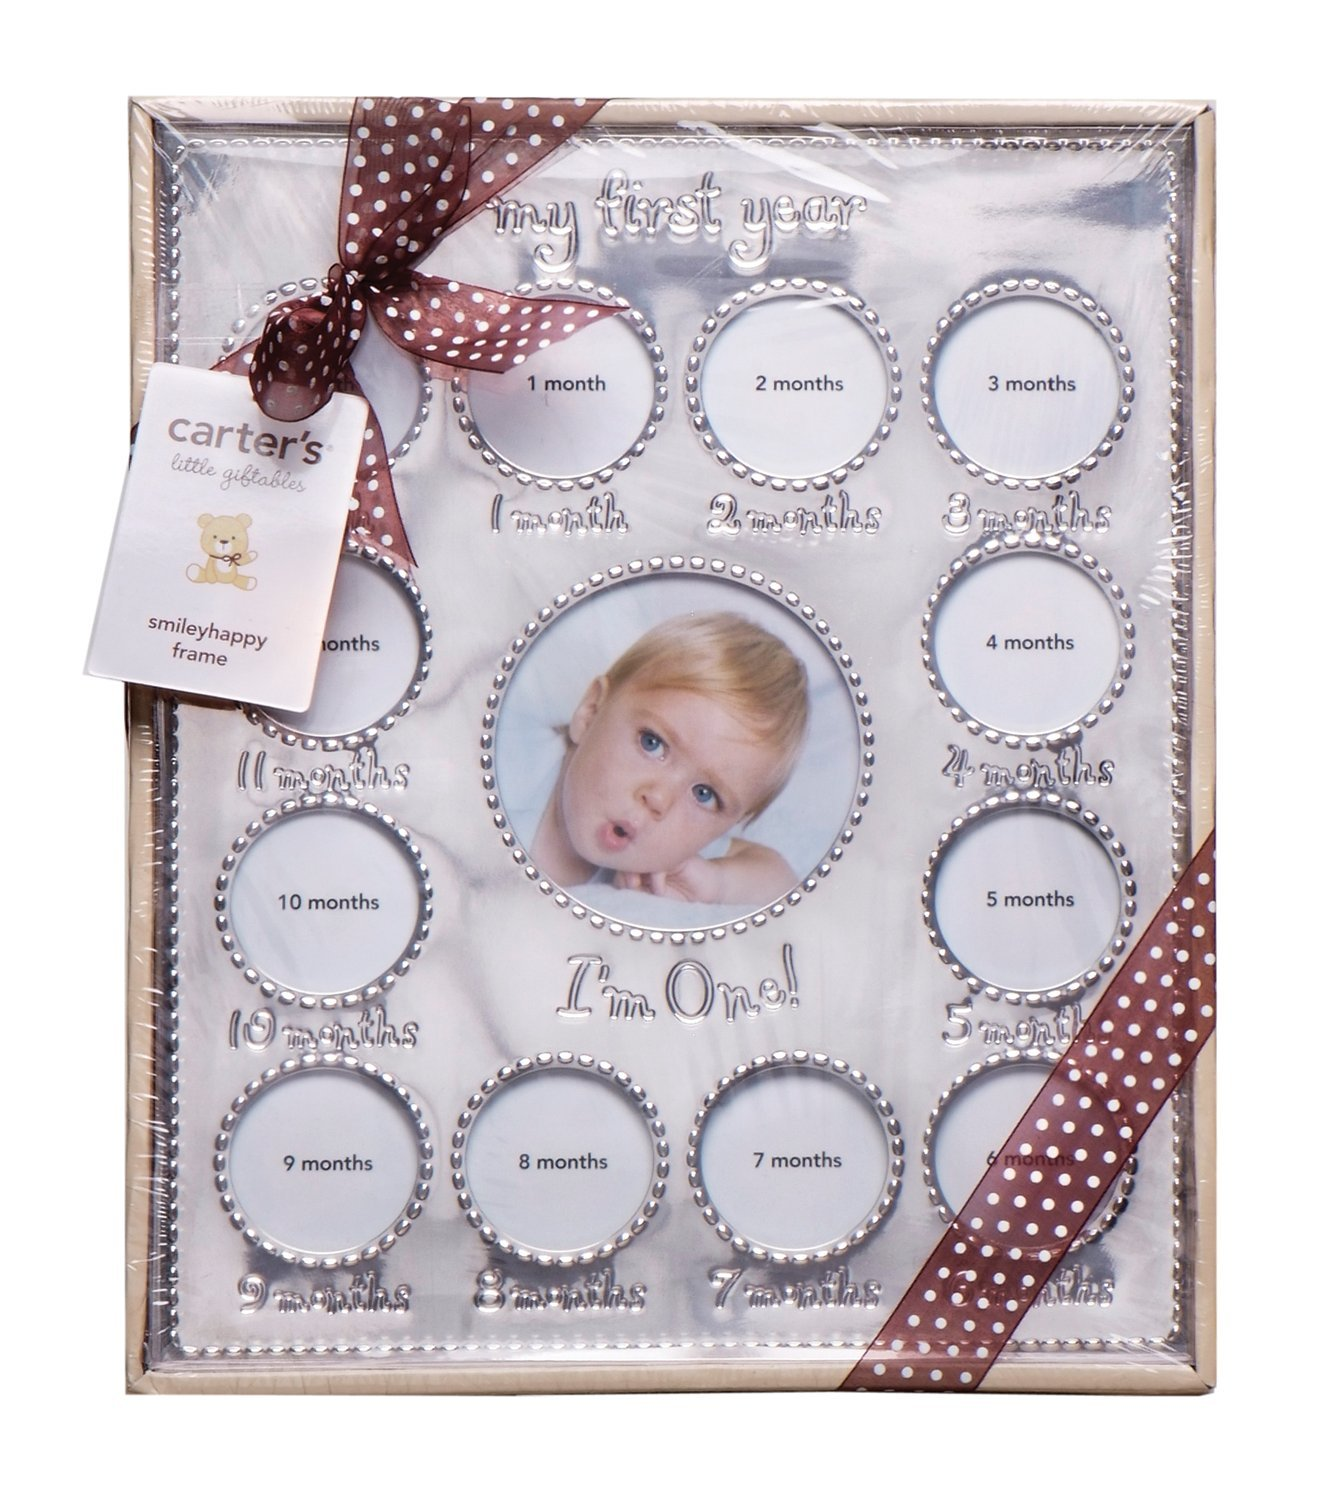 Buy My First Year Baby Photo Collage Frame Online at Low Prices in ...